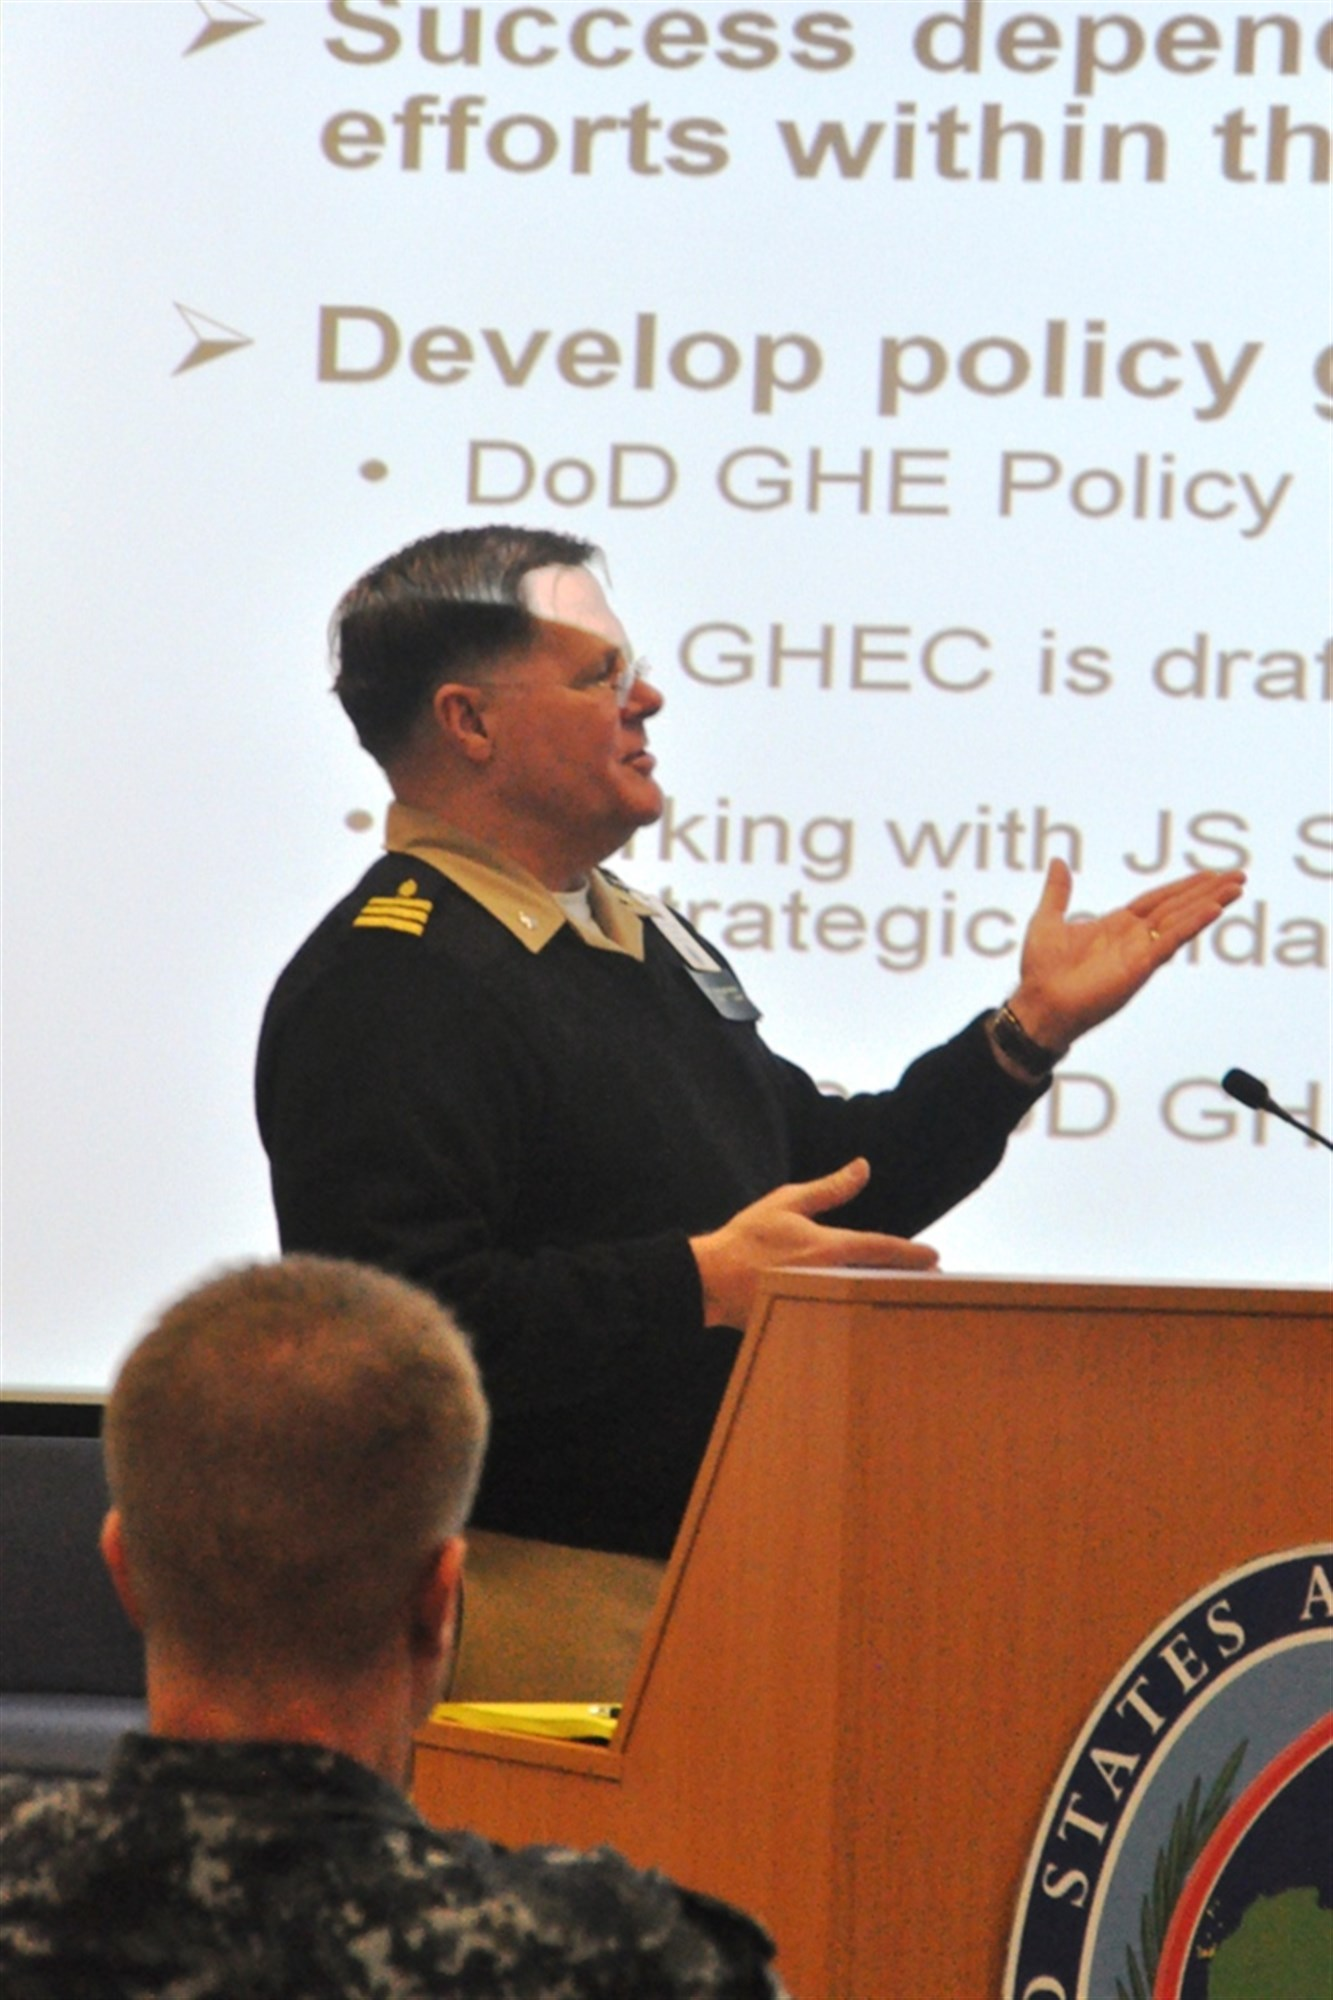 CDR Richard Gustafson, Office of the Undersecretary of Defense for Policy, briefs on DoD Global Health Engagement during the 2015 AFRICOM Partners Health Engagement Forum, a three-day event conducted at the U.S. Army Garrison Stuttgart, Germany at Kelley Barracks, Feb. 18-20, 2015.  The event was organized by the AFRICOM Command Surgeon's Office.  (U.S. Africa Command photo by Tech. Sgt. Olufemi A. Owolabi)